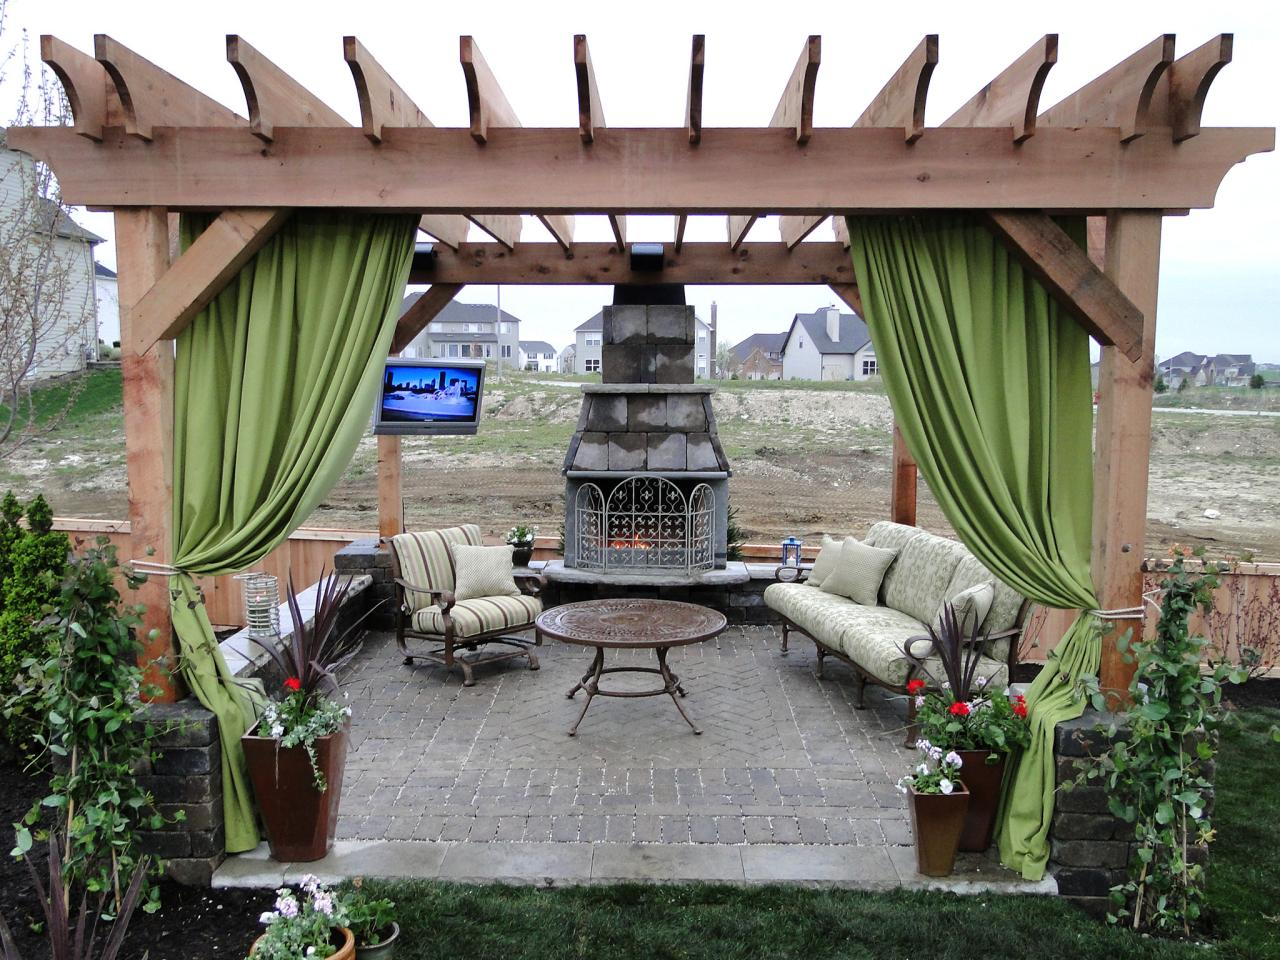 Pasadena-Woodlands TX Landscape Designs & Outdoor Living Areas-We offer Landscape Design, Outdoor Patios & Pergolas, Outdoor Living Spaces, Stonescapes, Residential & Commercial Landscaping, Irrigation Installation & Repairs, Drainage Systems, Landscape Lighting, Outdoor Living Spaces, Tree Service, Lawn Service, and more.